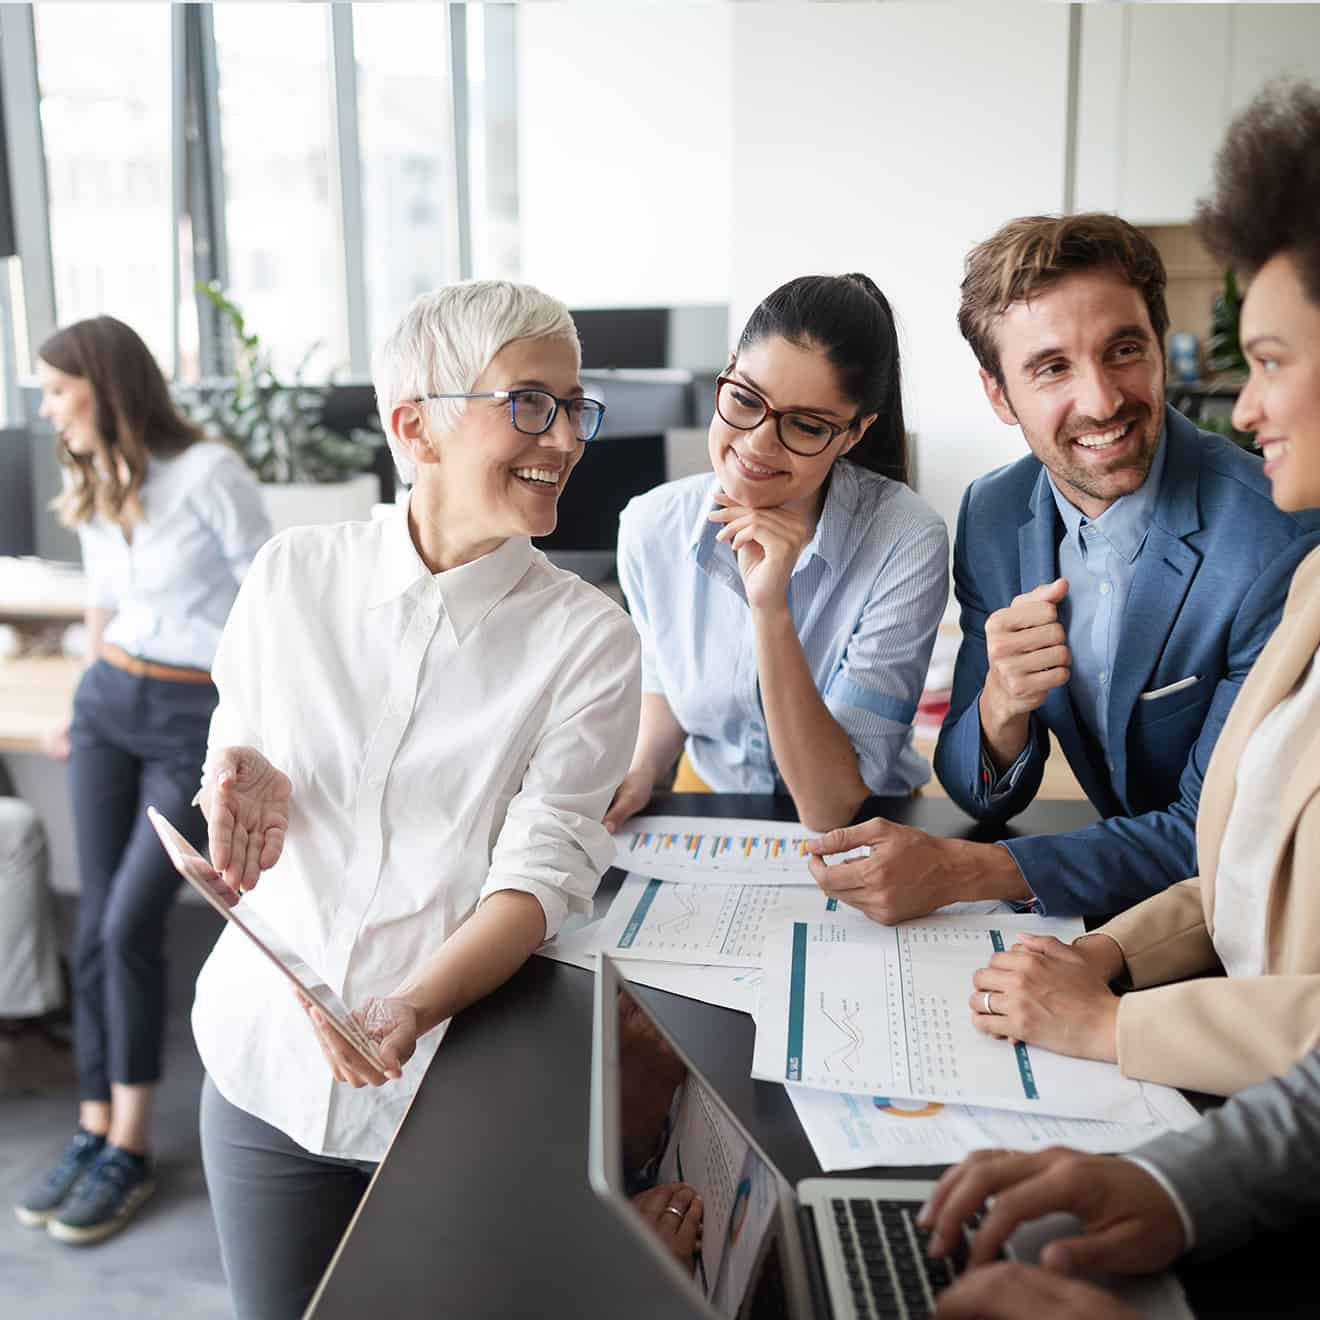 5 Ways to Craft the Ultimate Employee Engagement Strategy